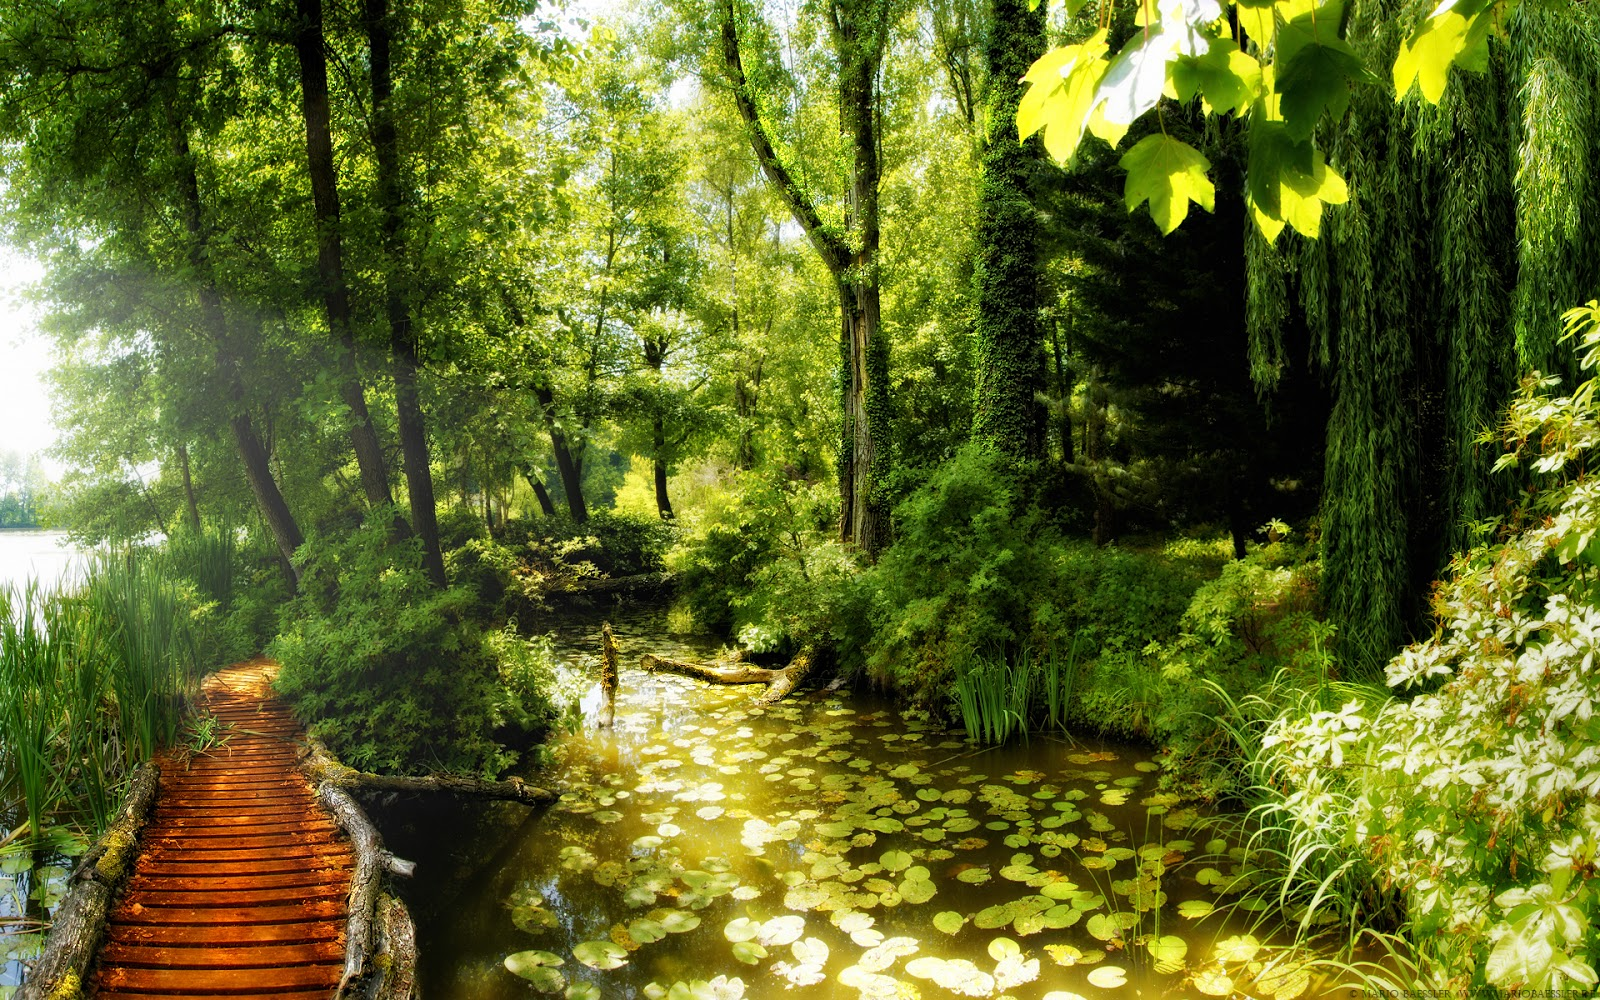 http://1.bp.blogspot.com/-gdF8FCxC7l4/URjoVIe_IqI/AAAAAAAABfY/PZjuEsm9mZA/s1600/beautiful-summer-2012-path-in-the-forest-hd-wallpaper.jpg